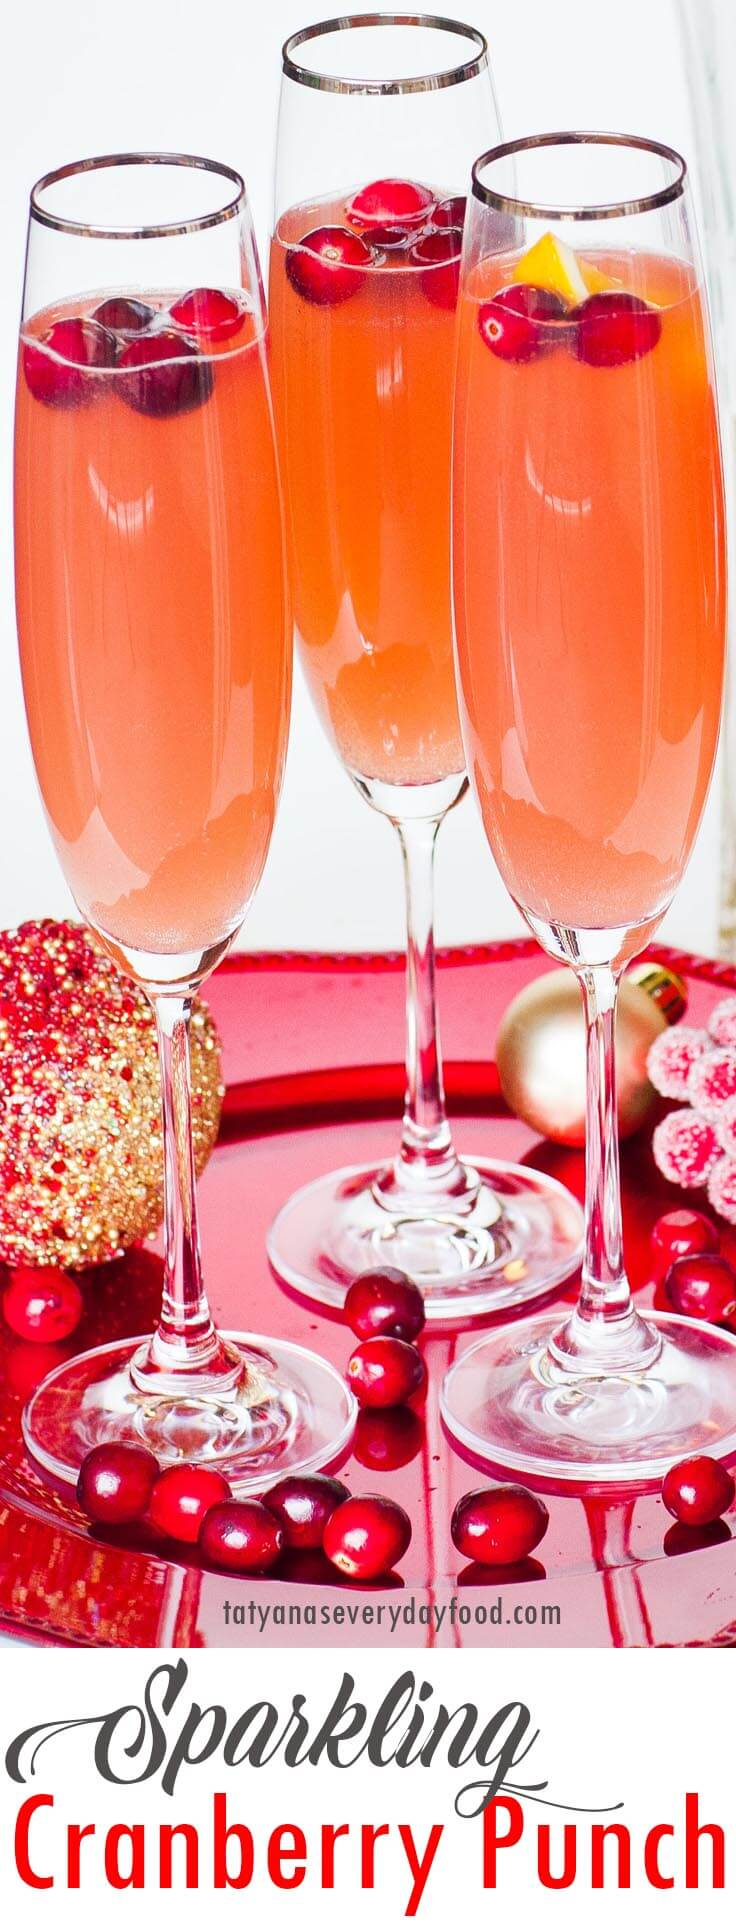 Sparkling Cranberry Punch video recipe